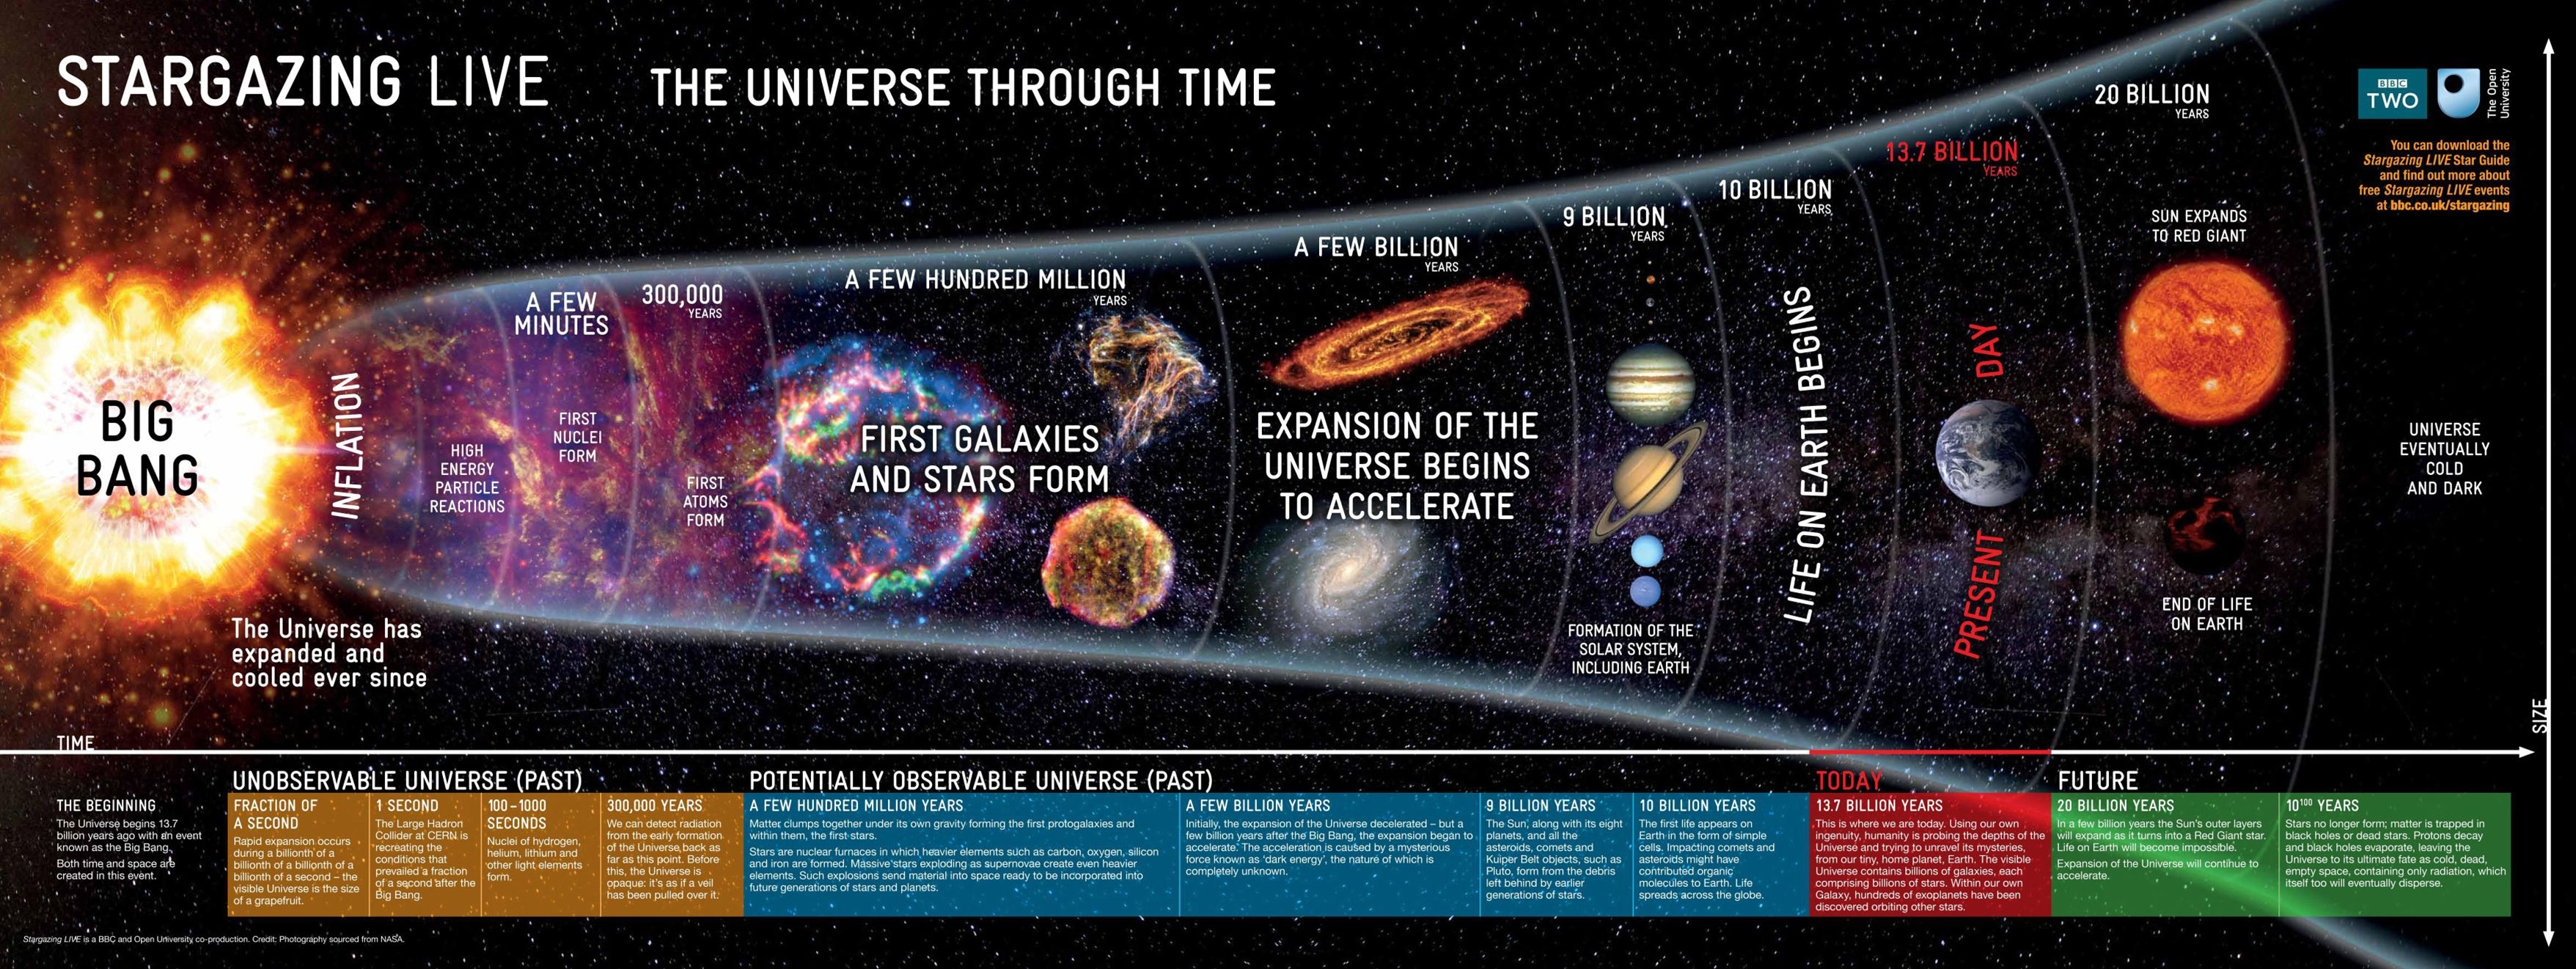 an analysis of the big bang theory of the beginning of the universe Discover what evidence exists to support the big bang theory of the birth of the universe learn how cosmic background radiation, the red shift of.